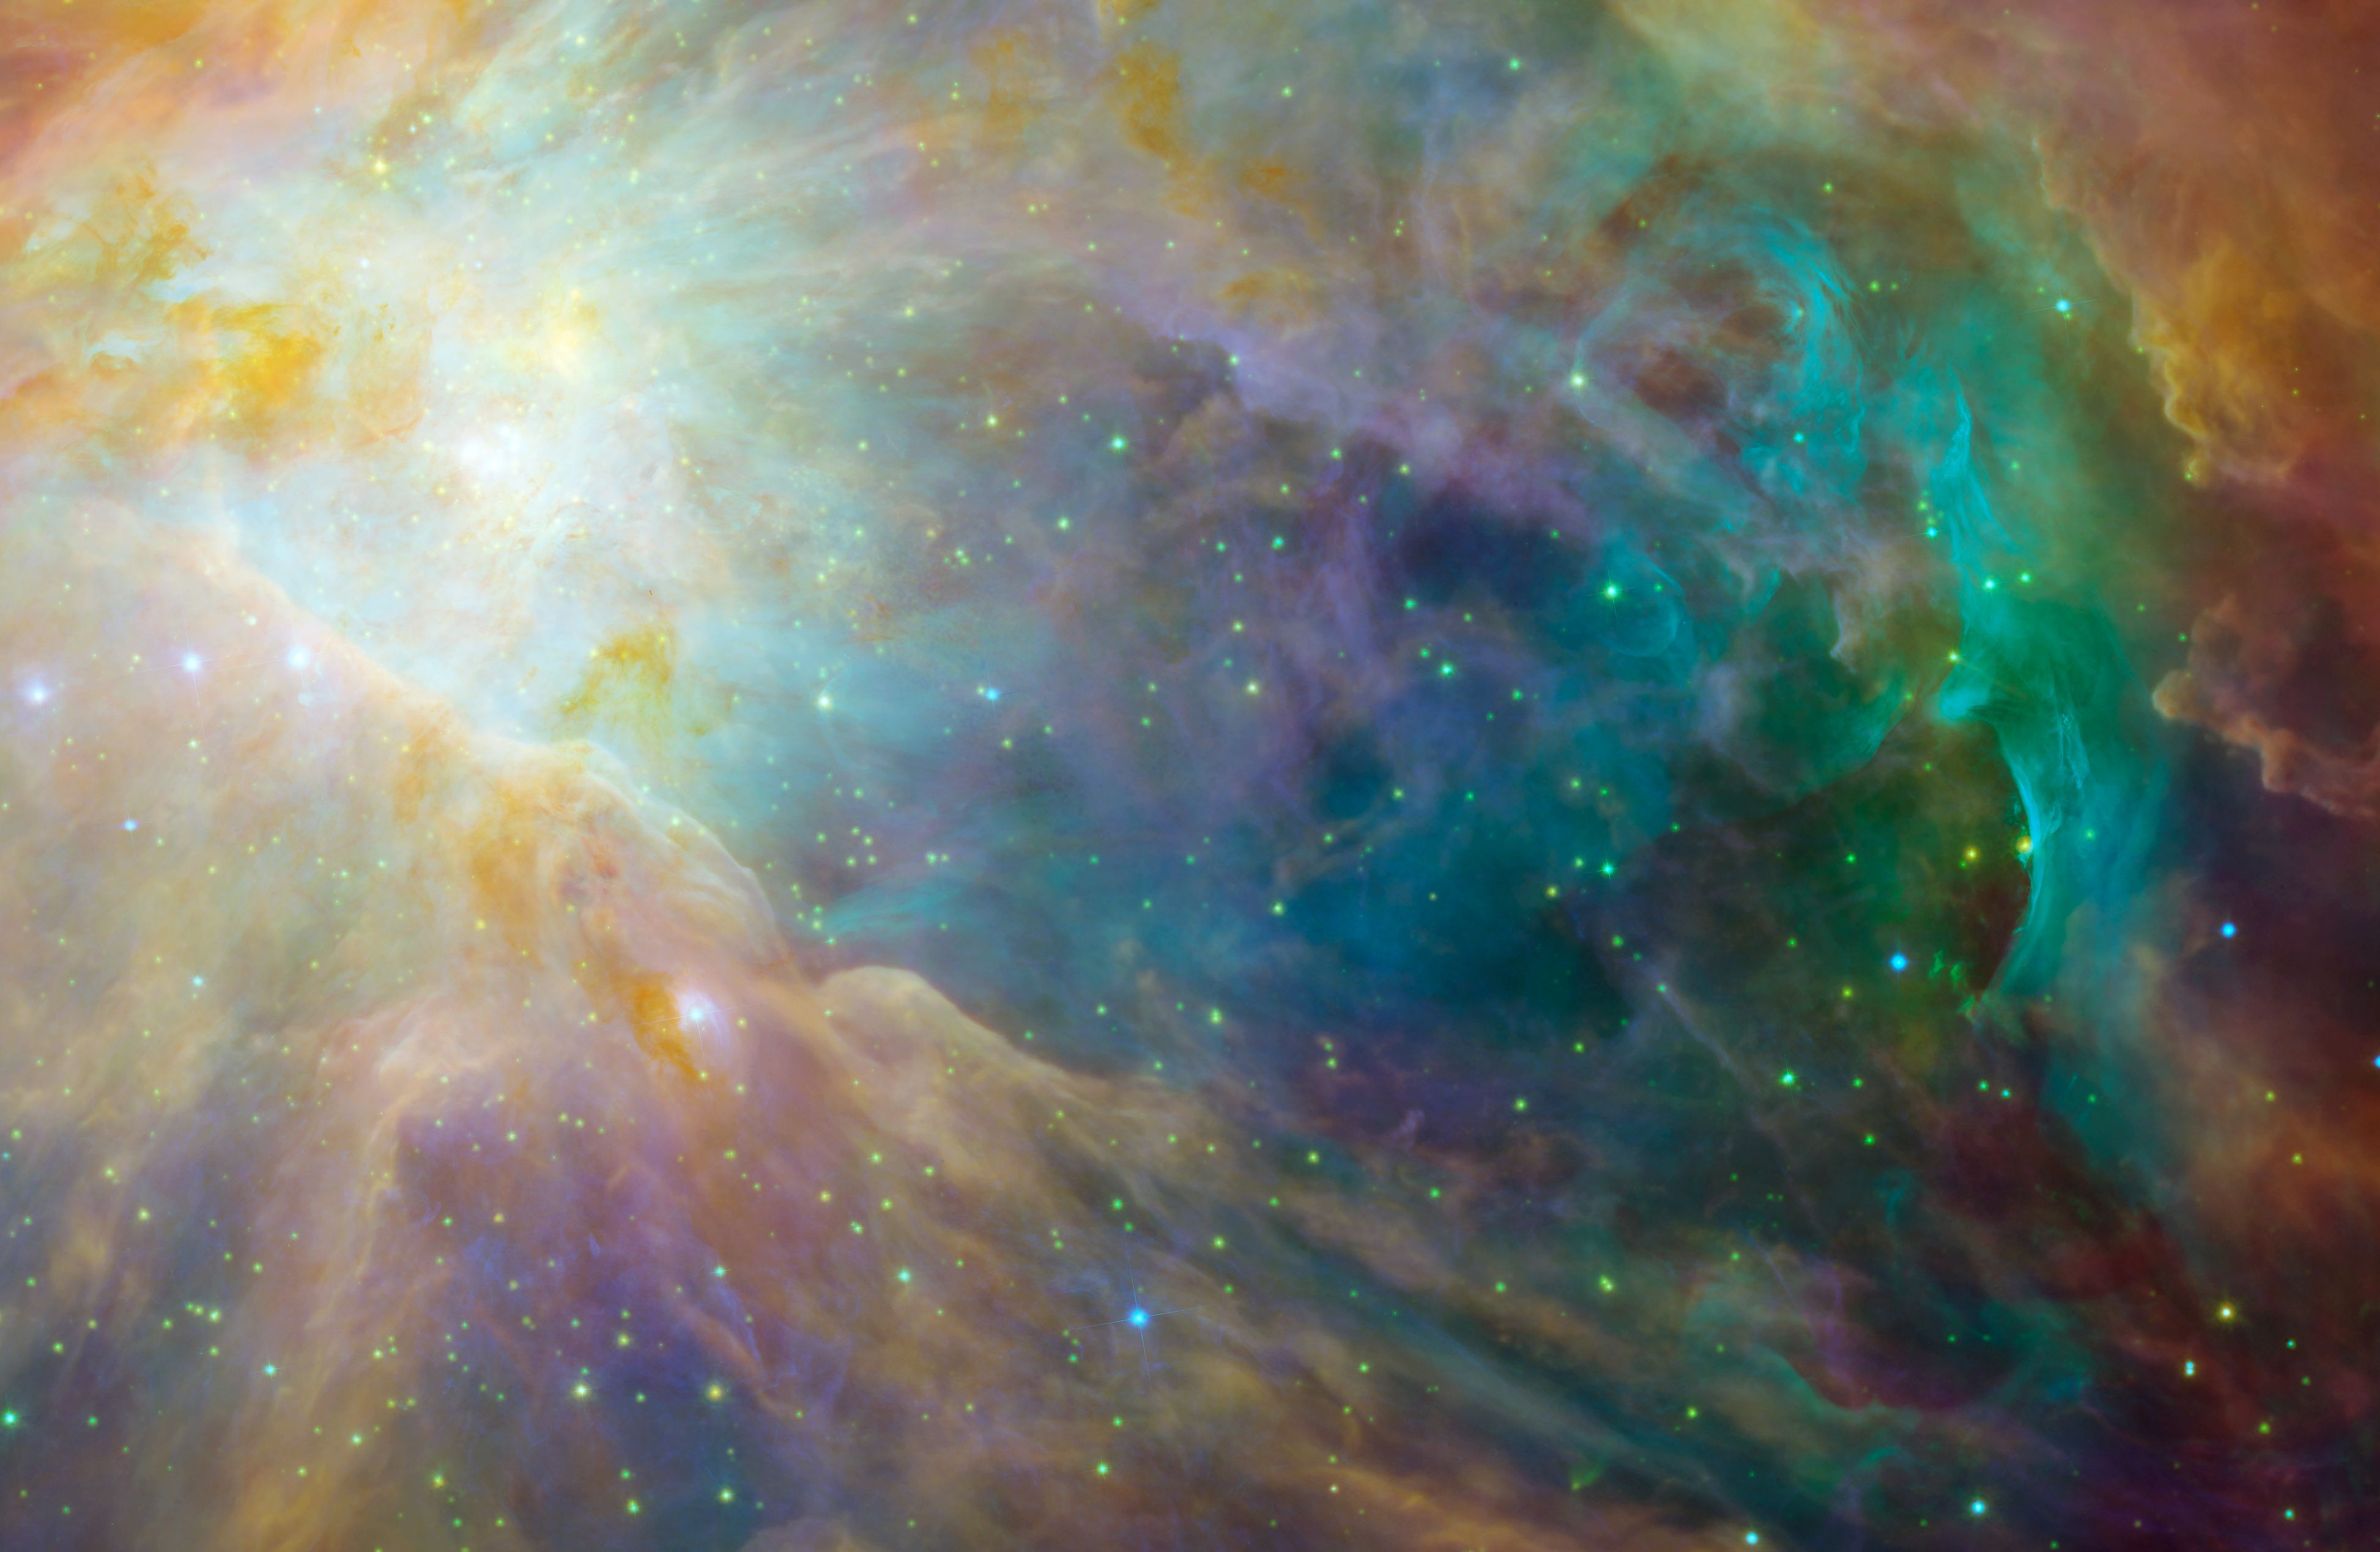 SPACE ORION NEBULA SCIENCE LARGE WALL ART PRINT POSTER PICTURE LF2340